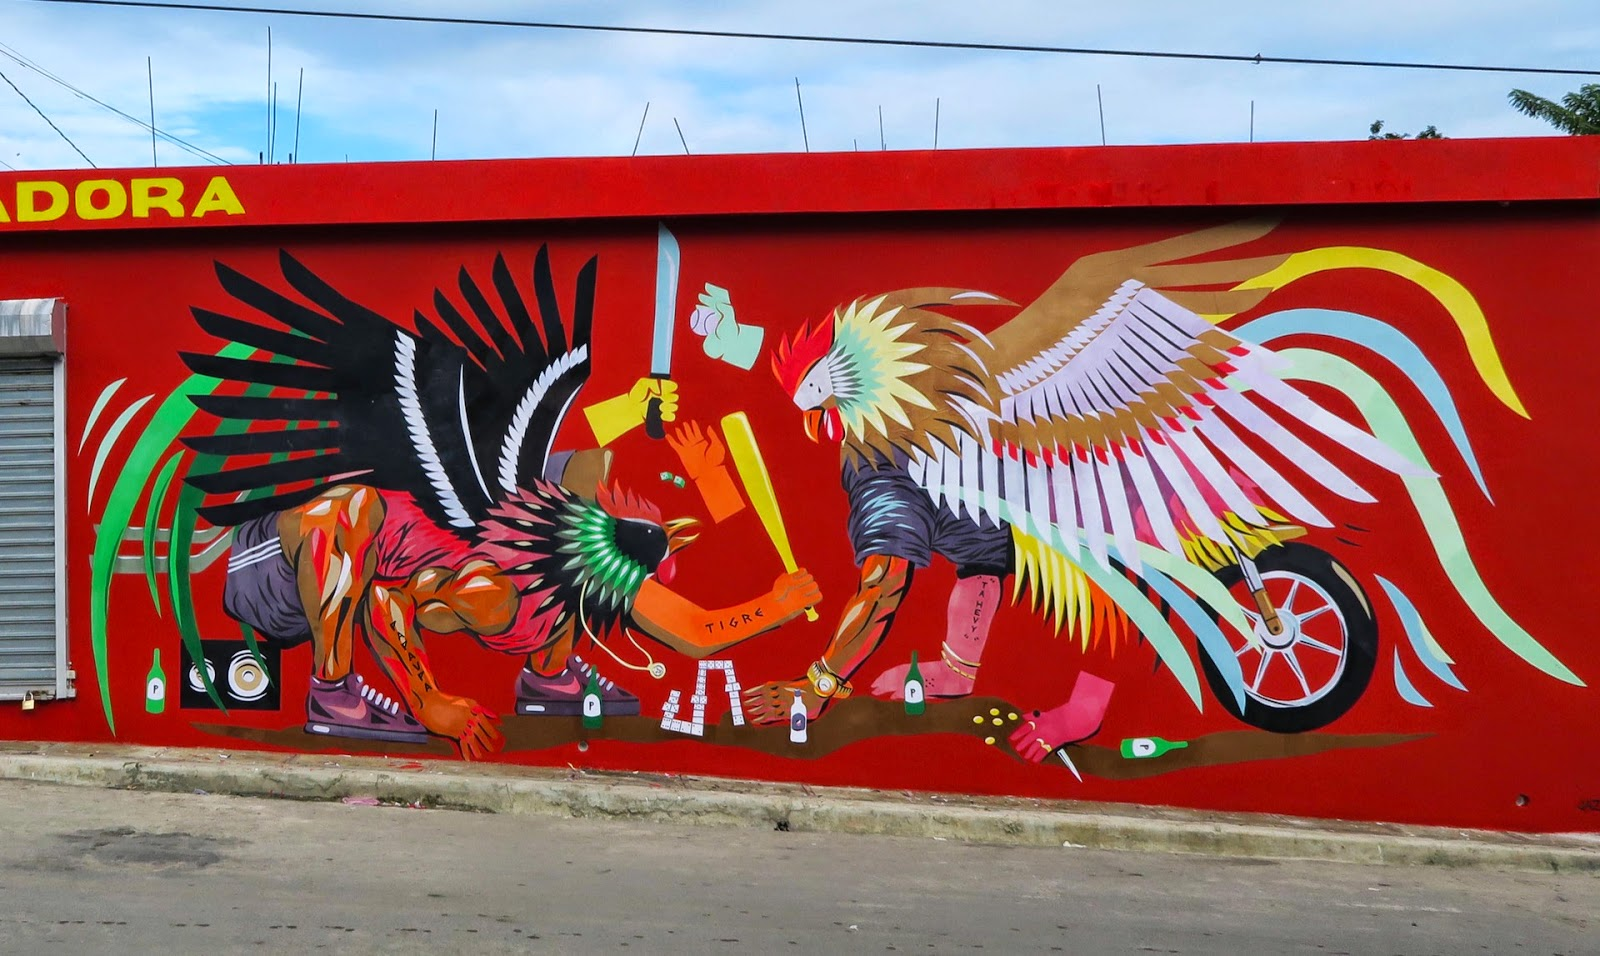 While we last heard from him in Miami for Art Basel 2014, JAZ is now in the Caribbean where he was invited by the ArteSano Street Art Festival organized by Evoca1 and Inoperable.